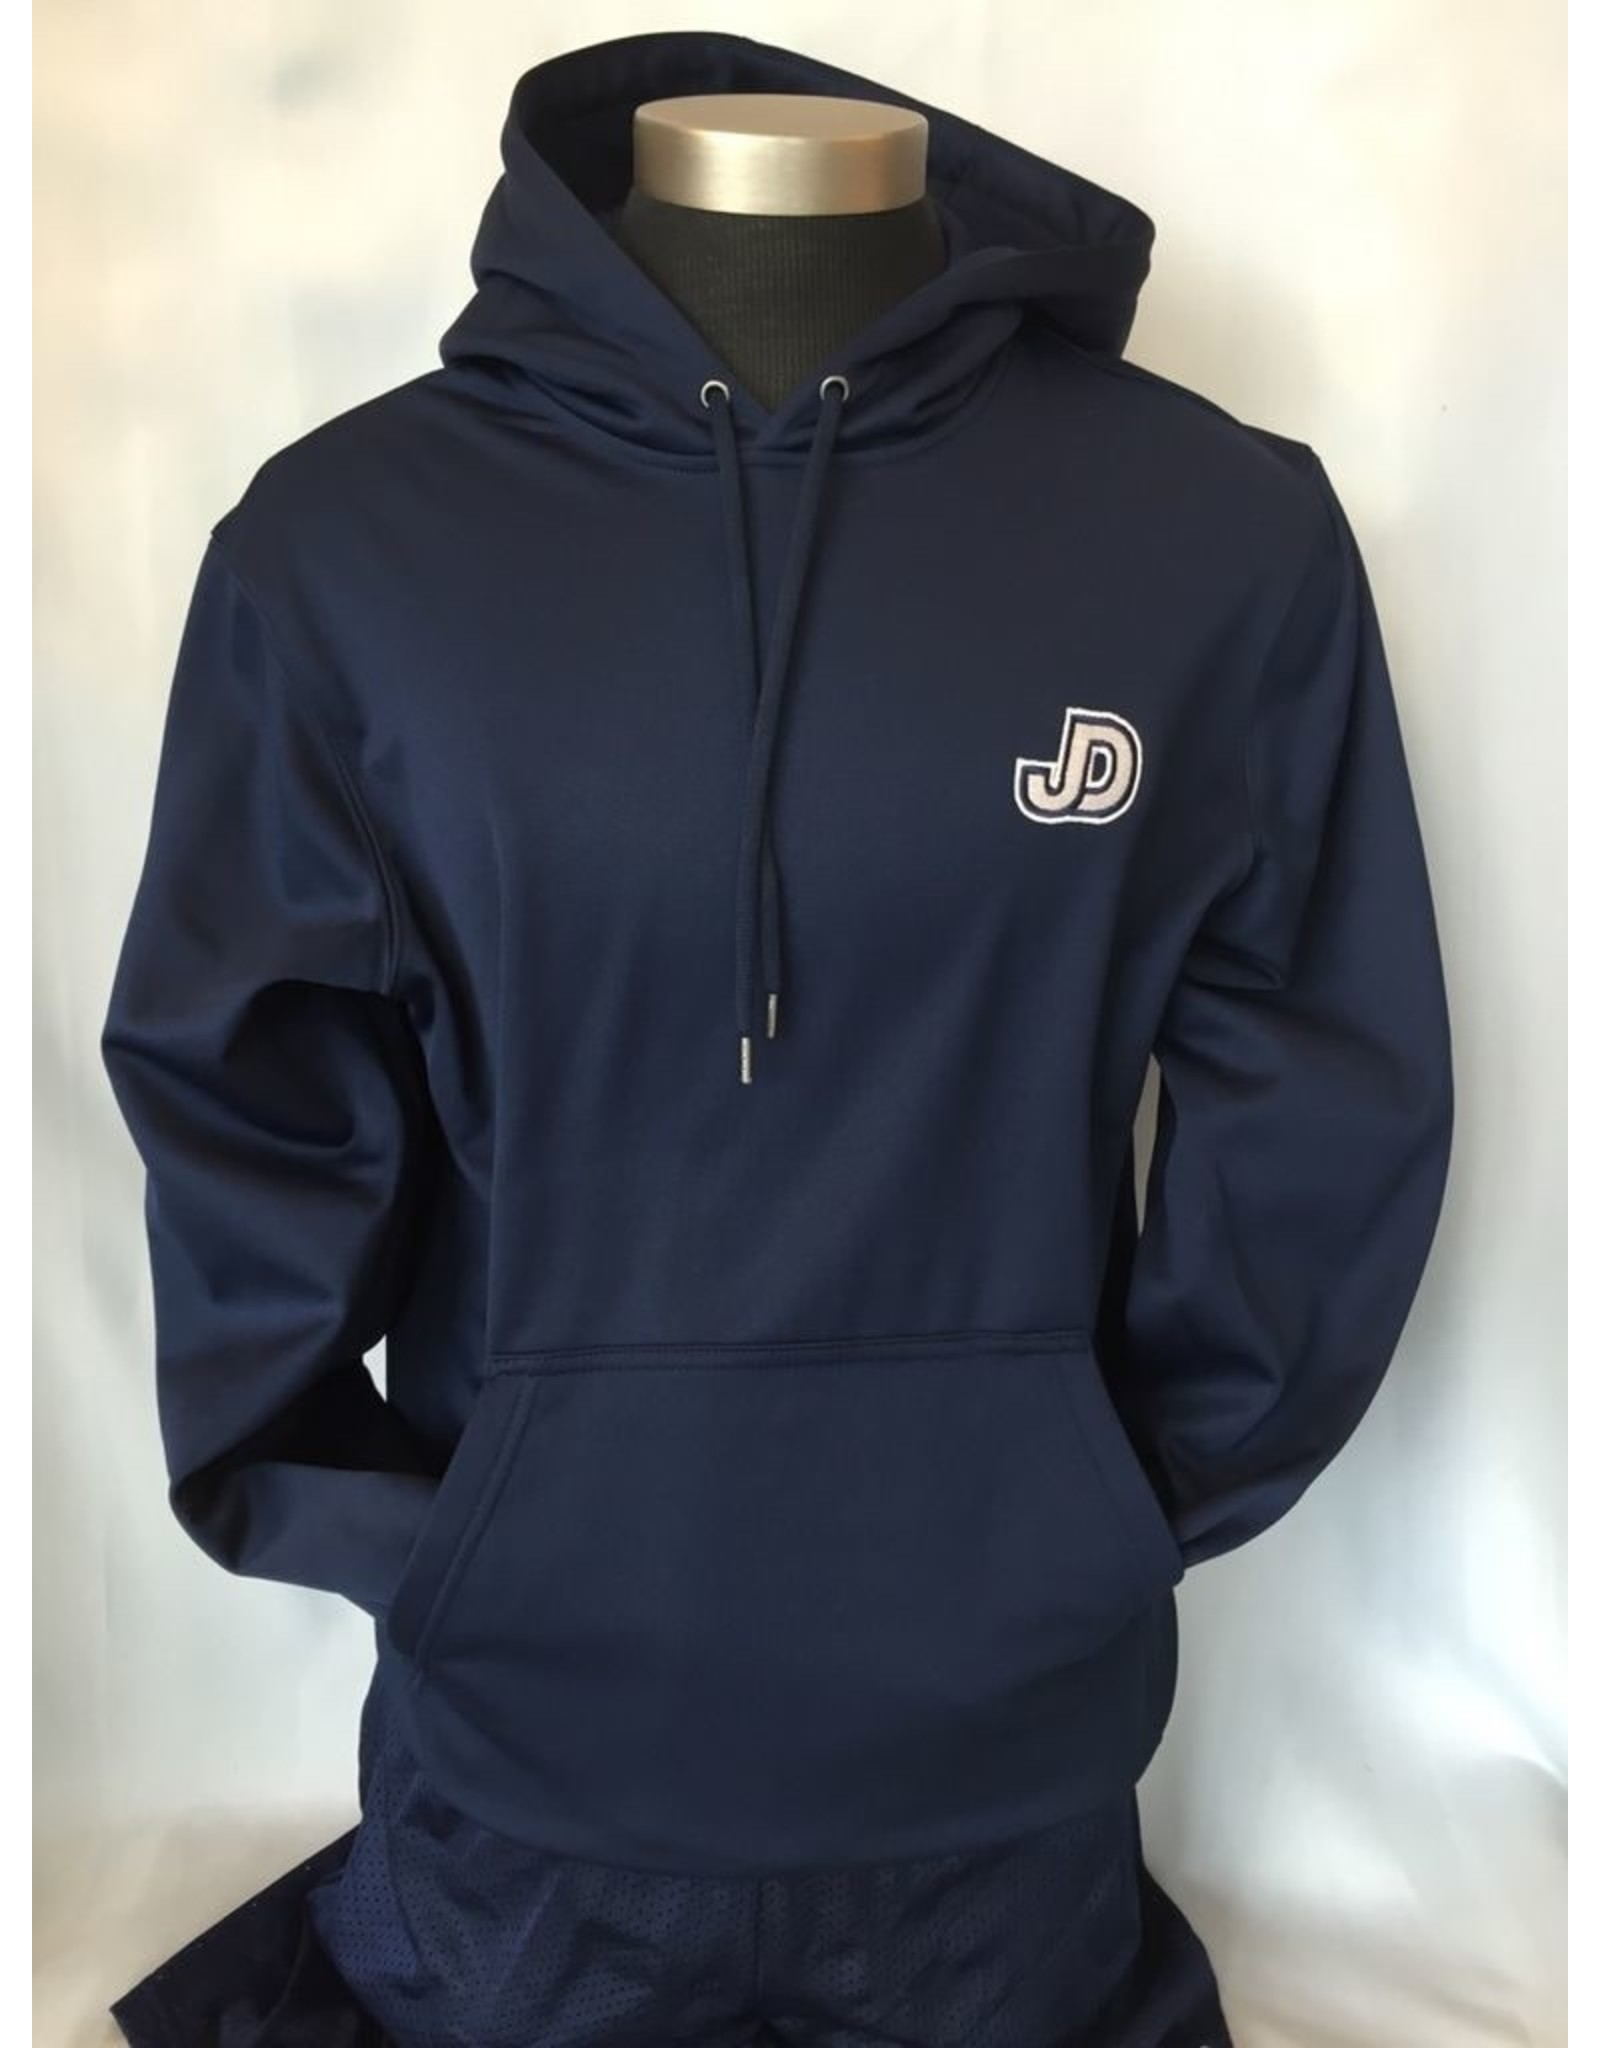 NON-UNIFORM Sweatshirt - Hooded Pullover, JD/eagle tackle twill applique center back, JD embry. left chest front